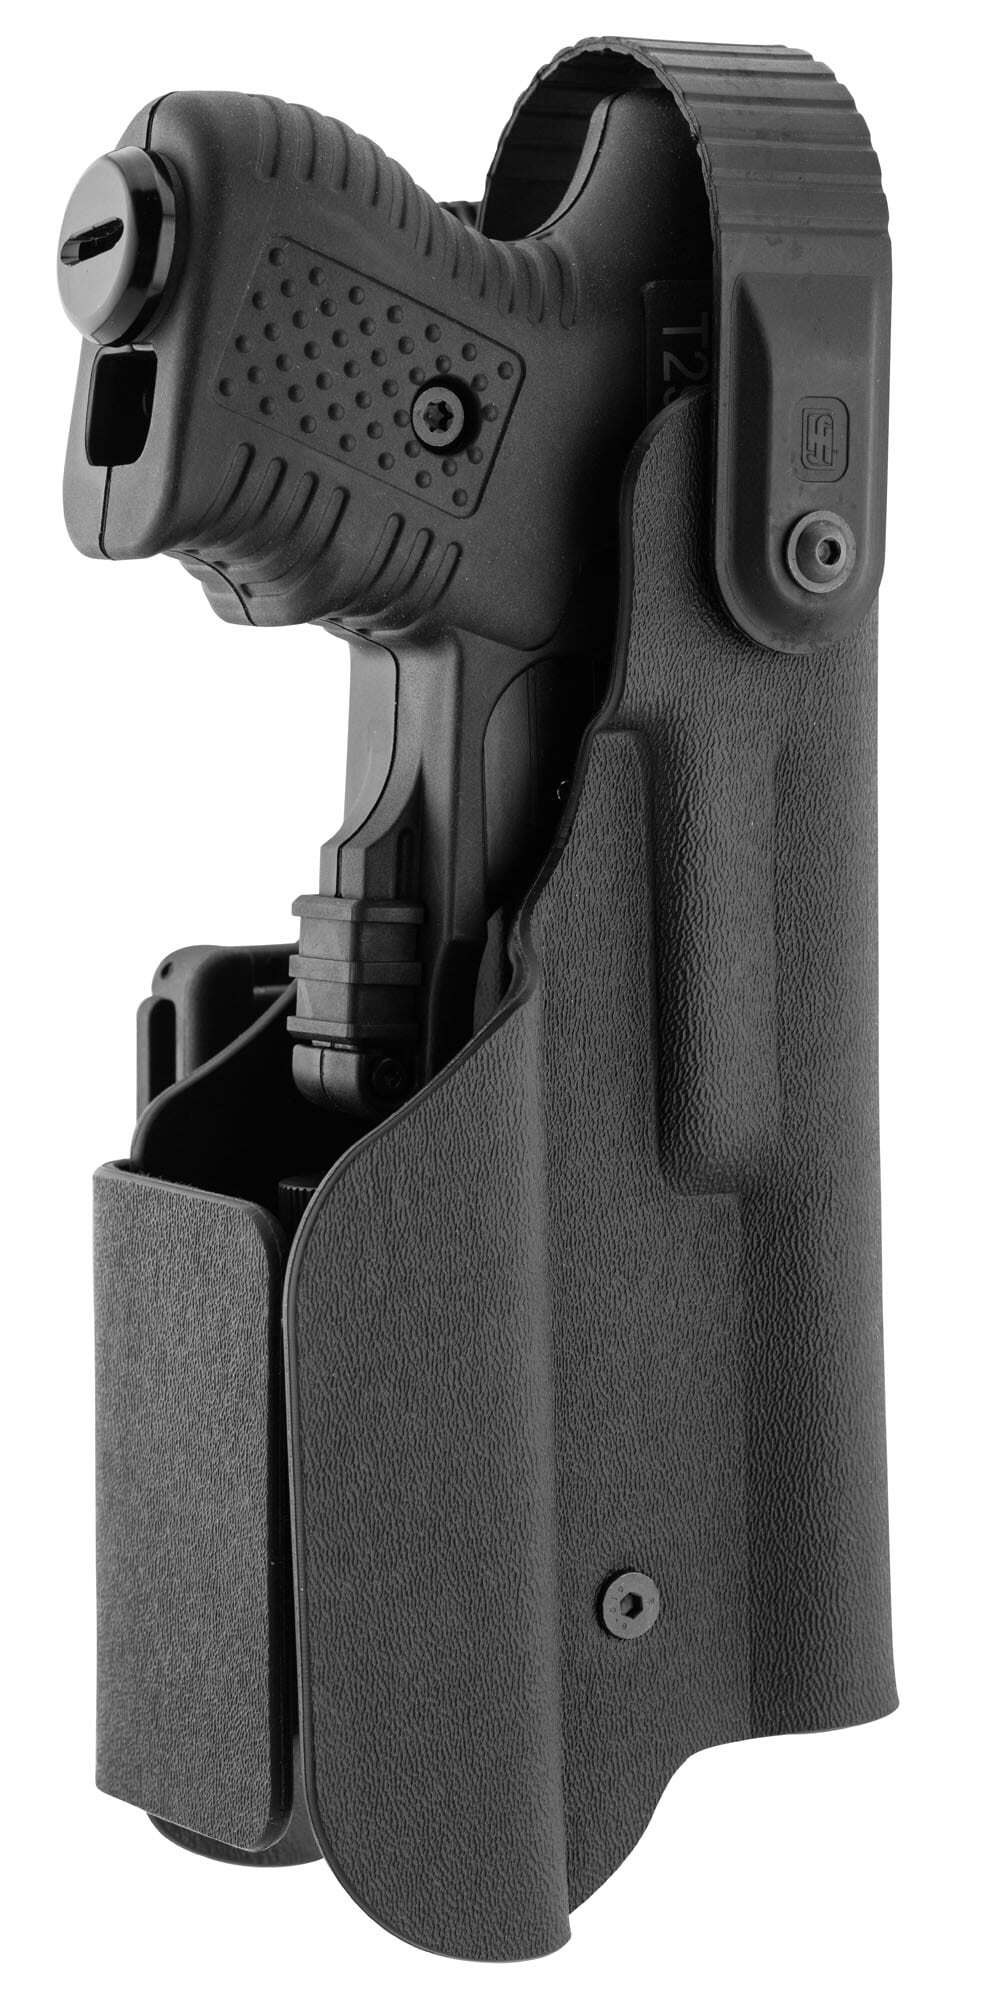 JPX390-3-Holster pour JPX - Kydex Paladin II avec lampe tactique - JPX400